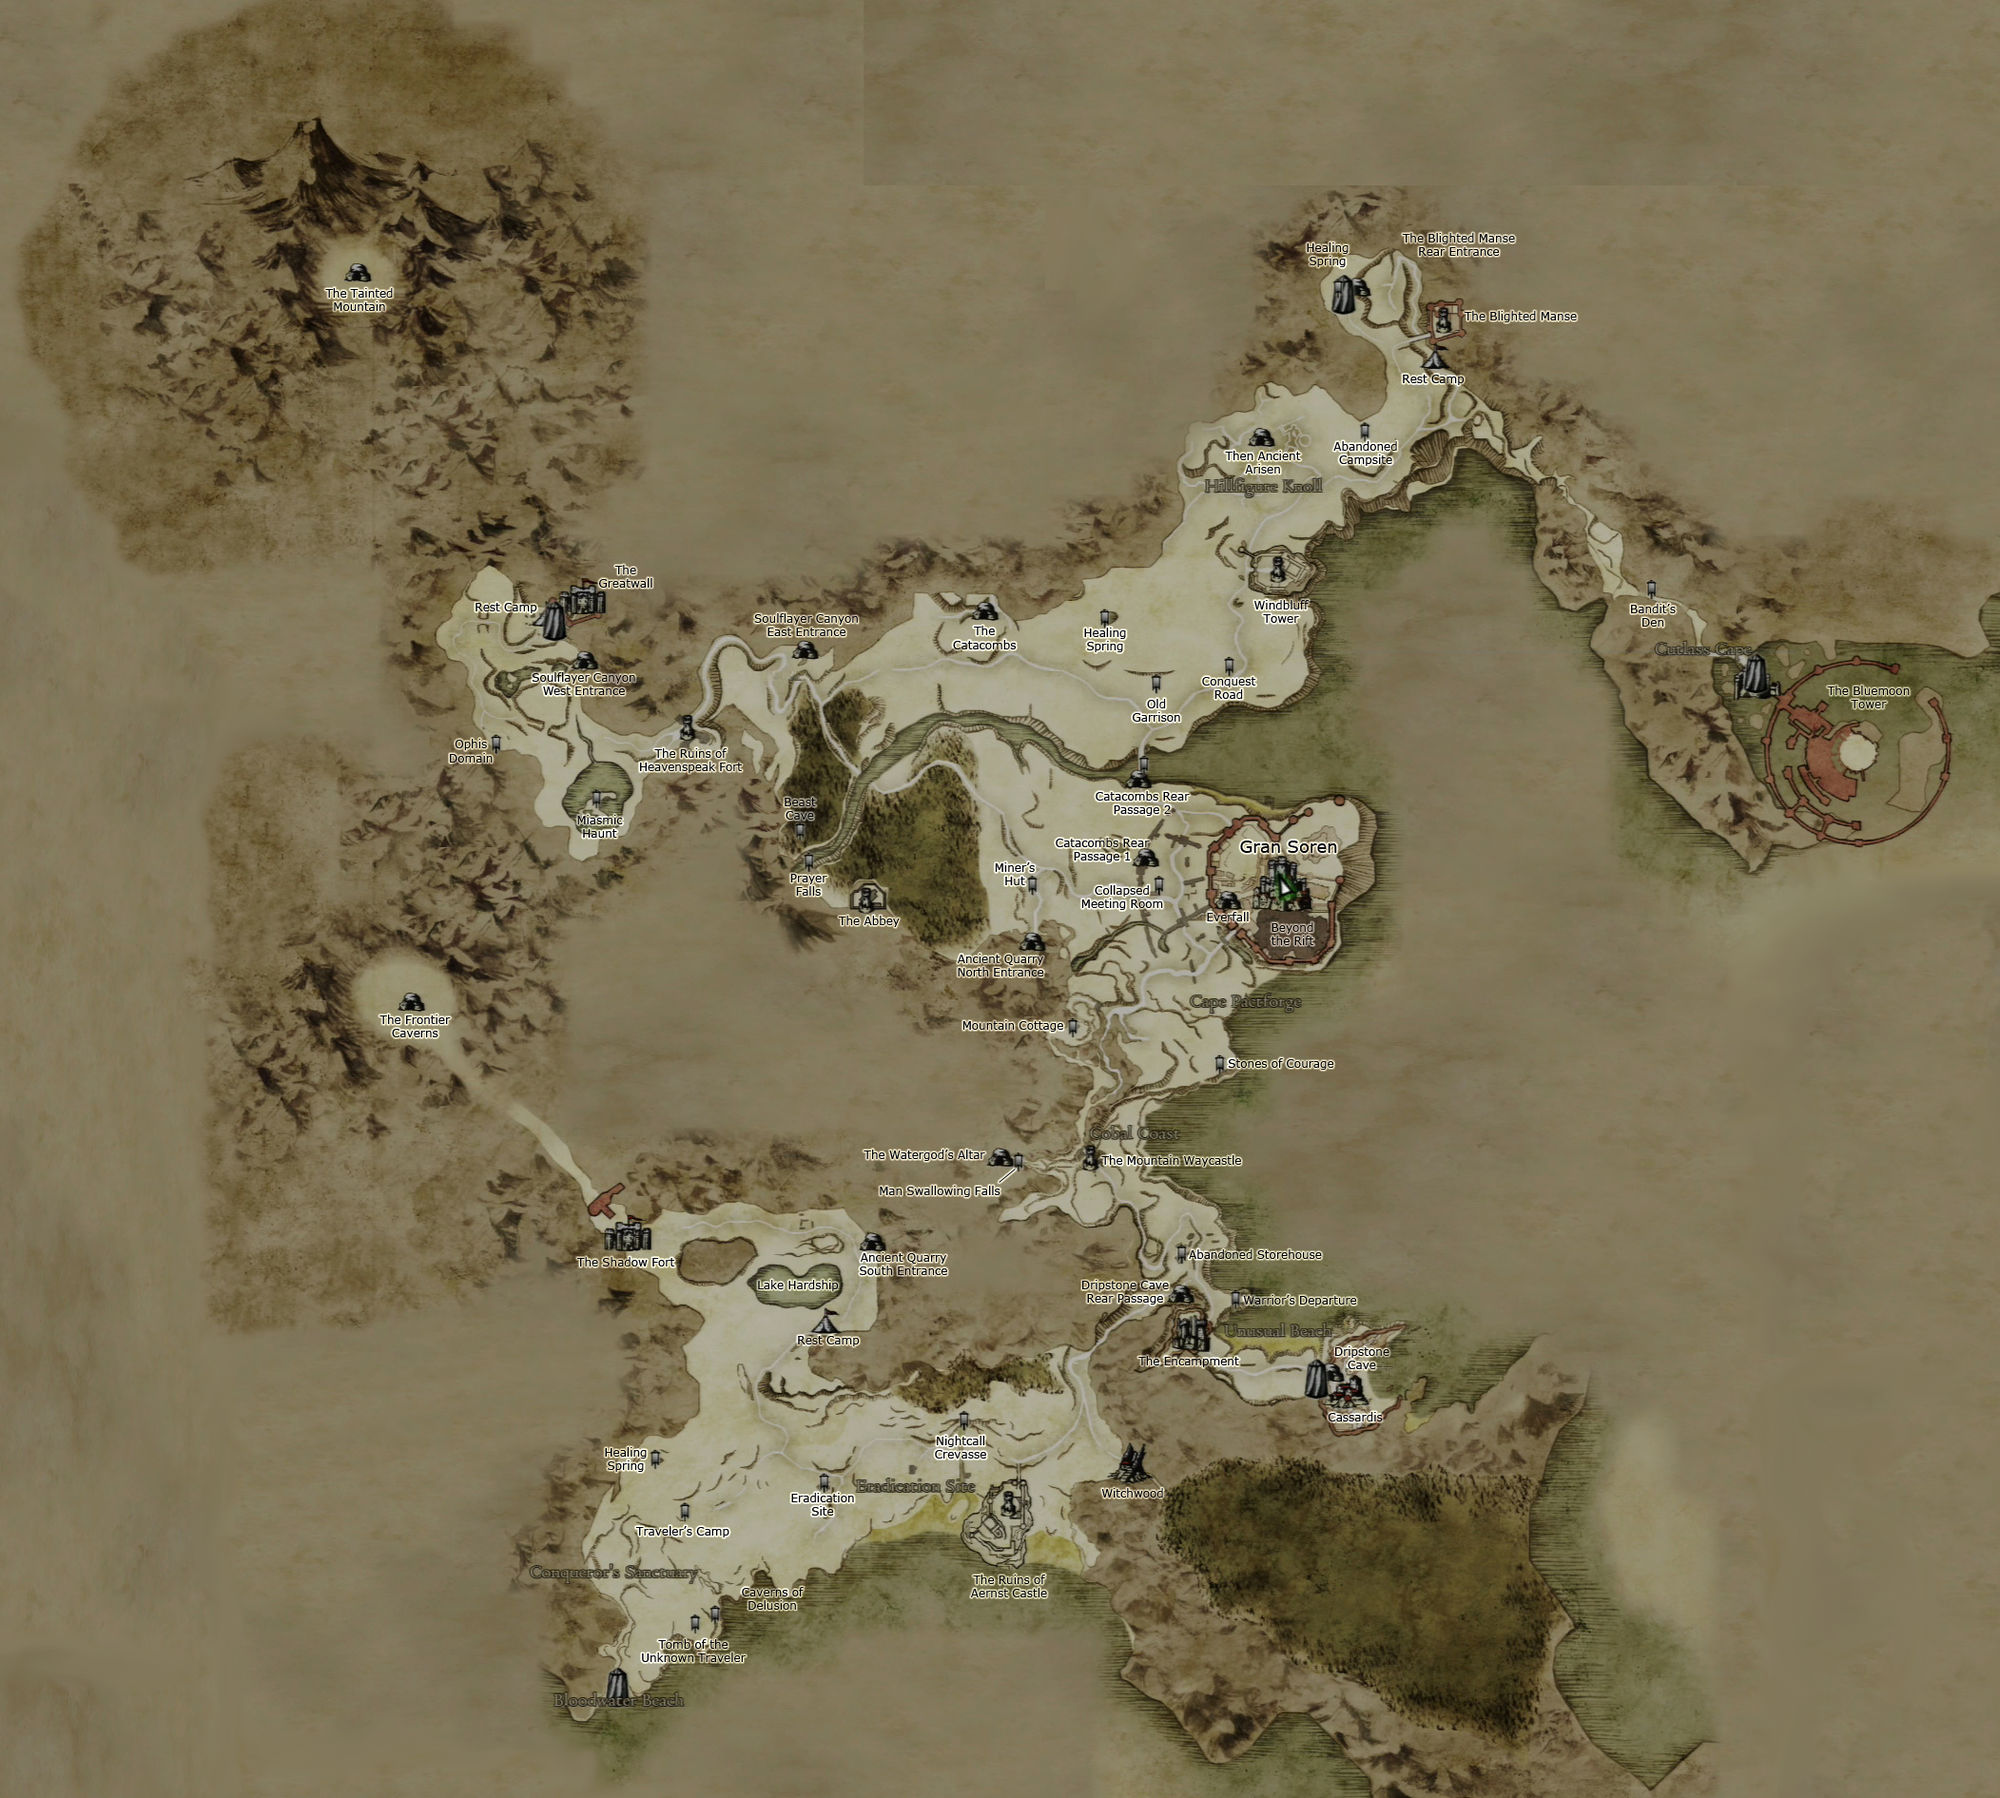 Dragons Dogma Map Steam Community :: Guide :: Achievement guide, 59/59